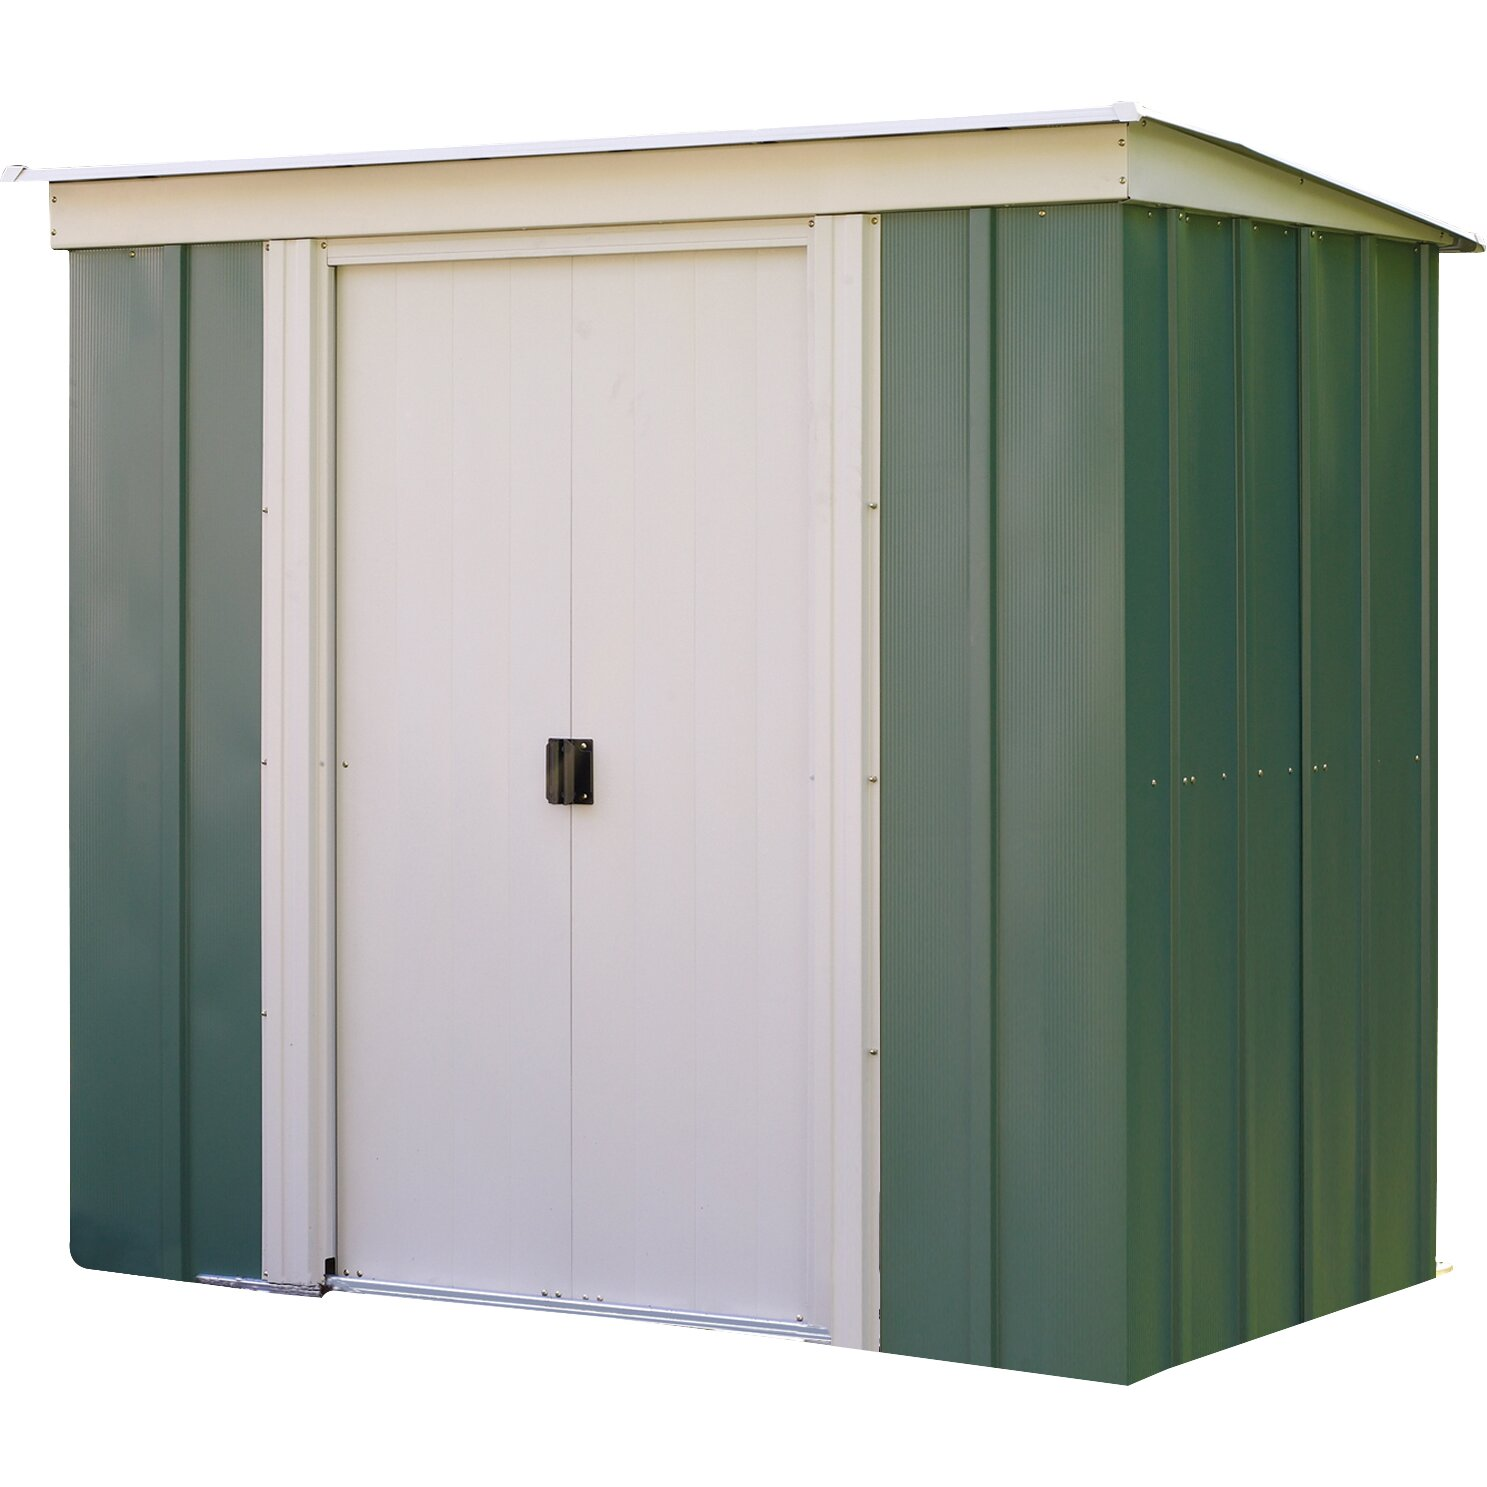 Rowlinson 6 x 4 metal lean to shed reviews wayfair uk for Garden shed 4 x 3